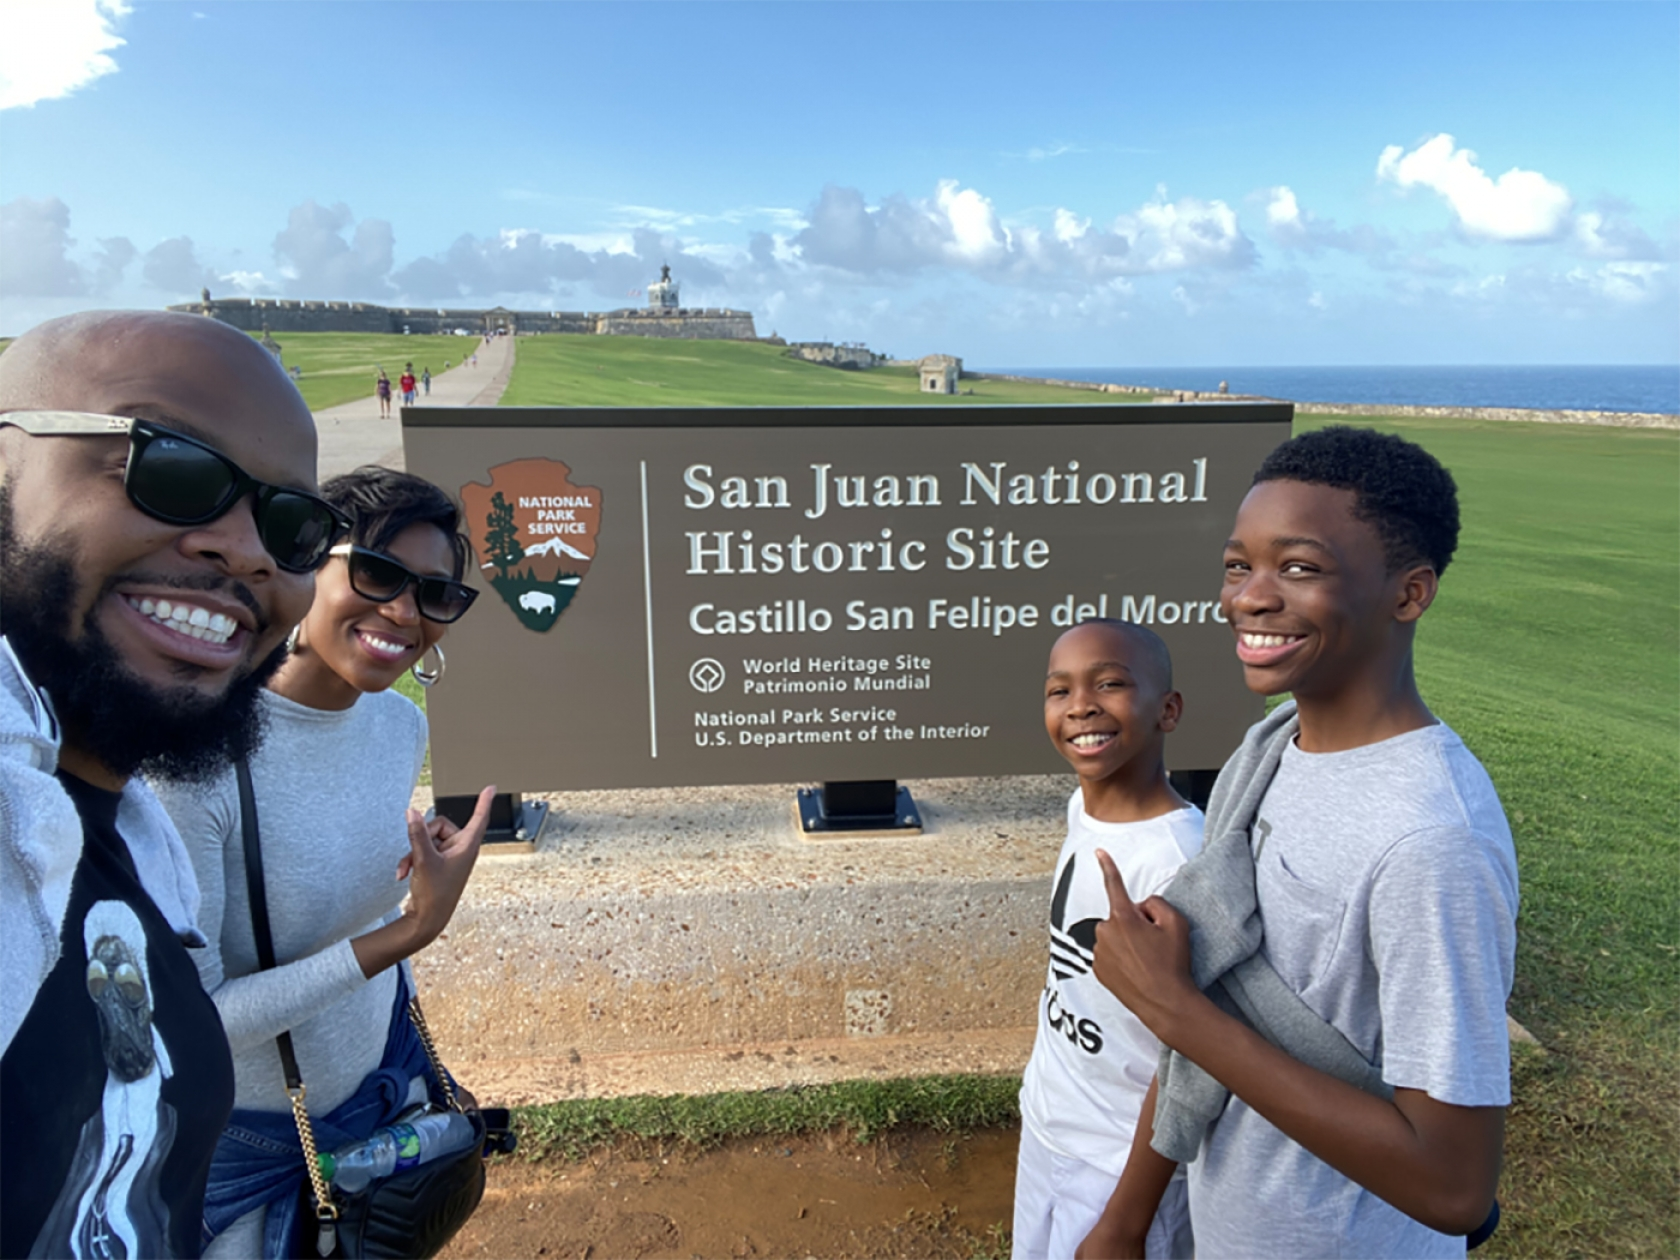 Kev on Stage and his family at San Juan National Historic Site